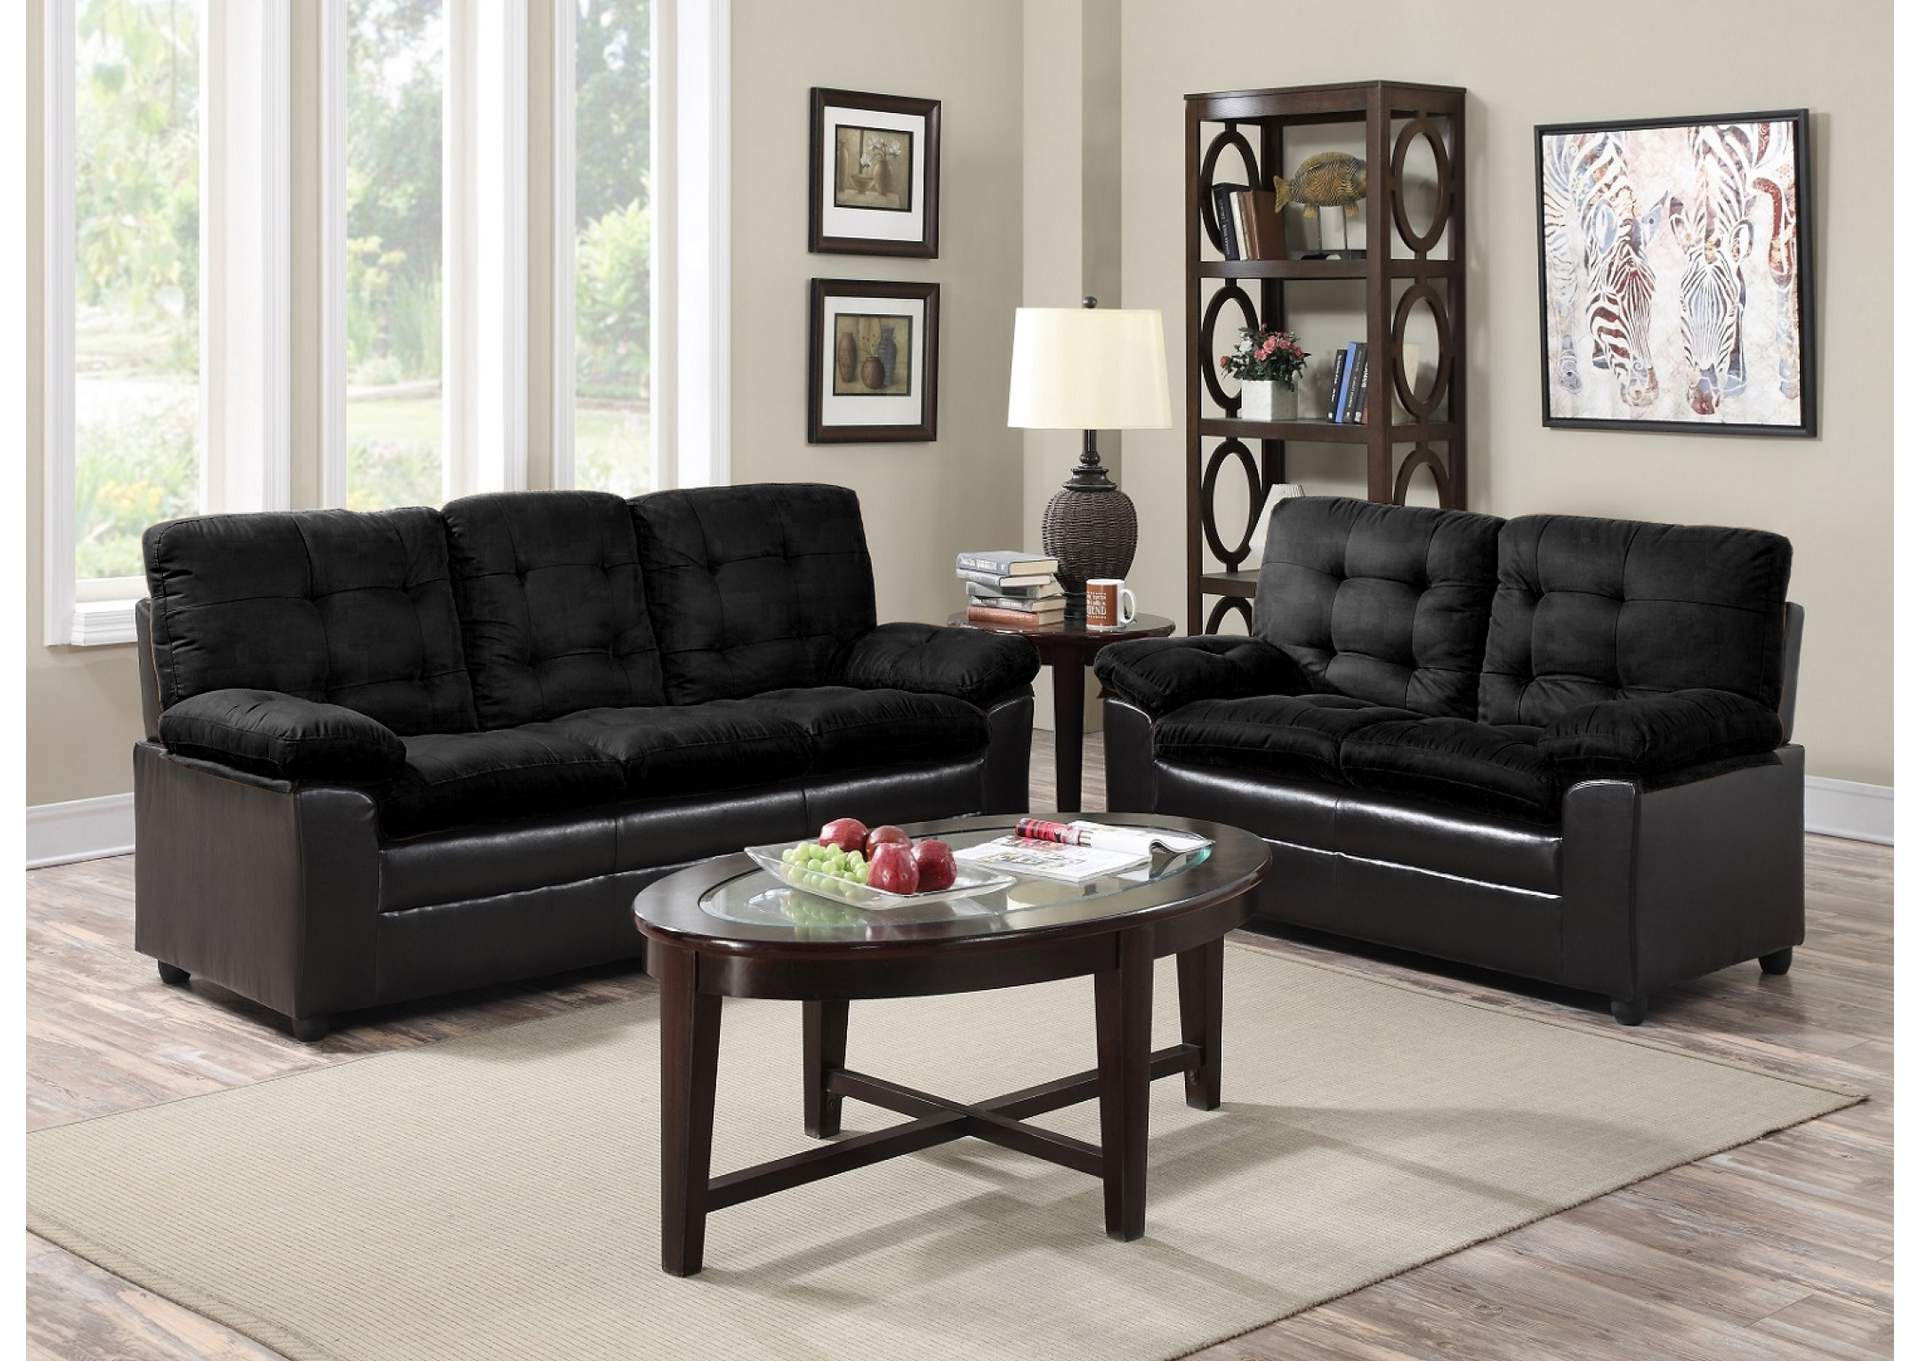 Black Microfiber Sofa & Loveseat,Global Trading